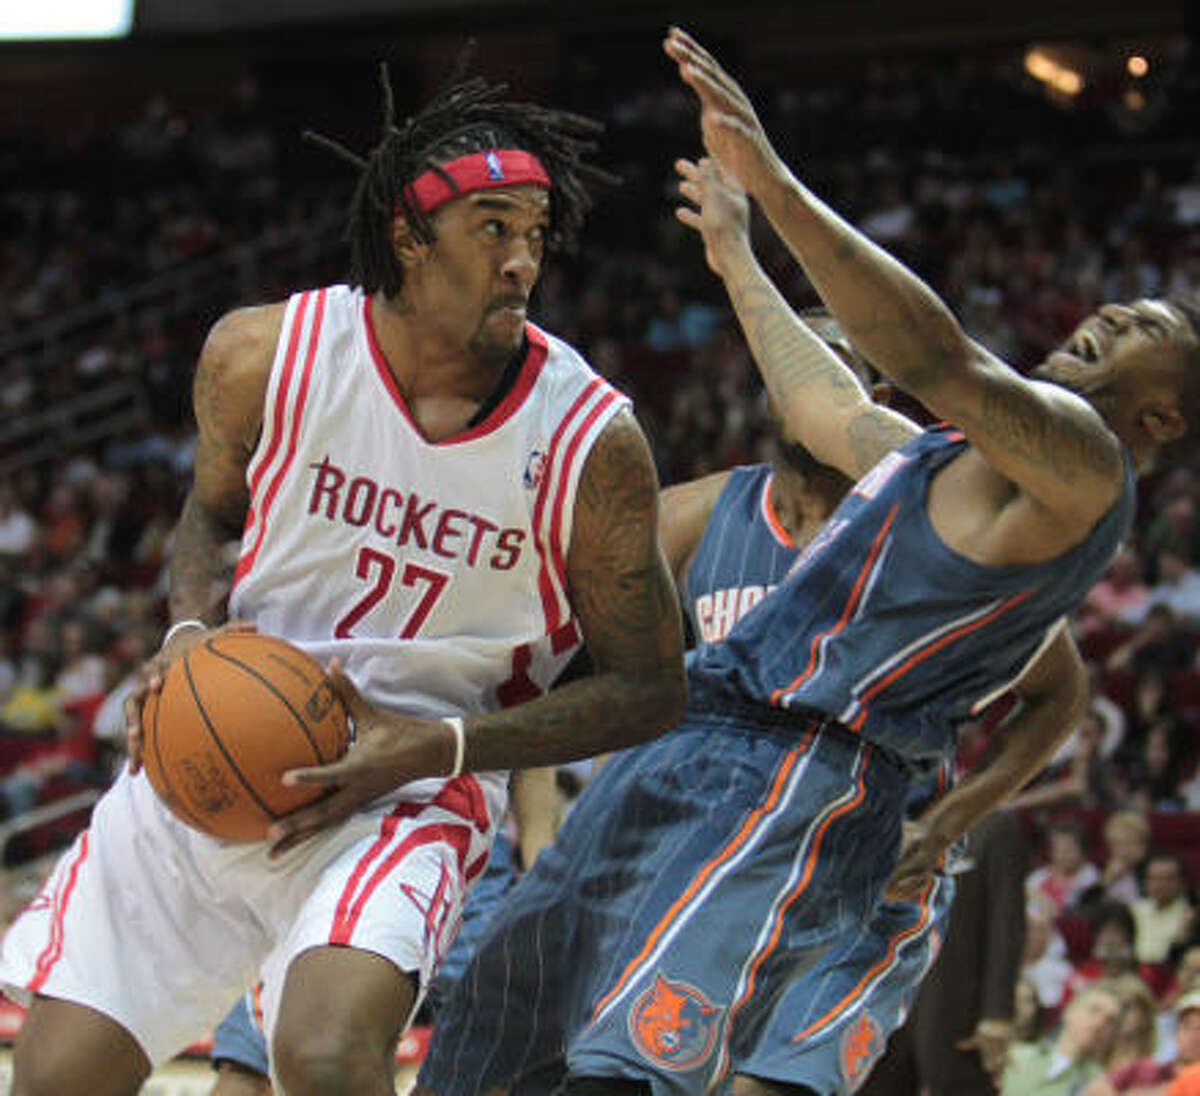 Rockets center Jordan Hill (27) gives an elbow to Bobcats forward Tyrus Thomas during the second half.